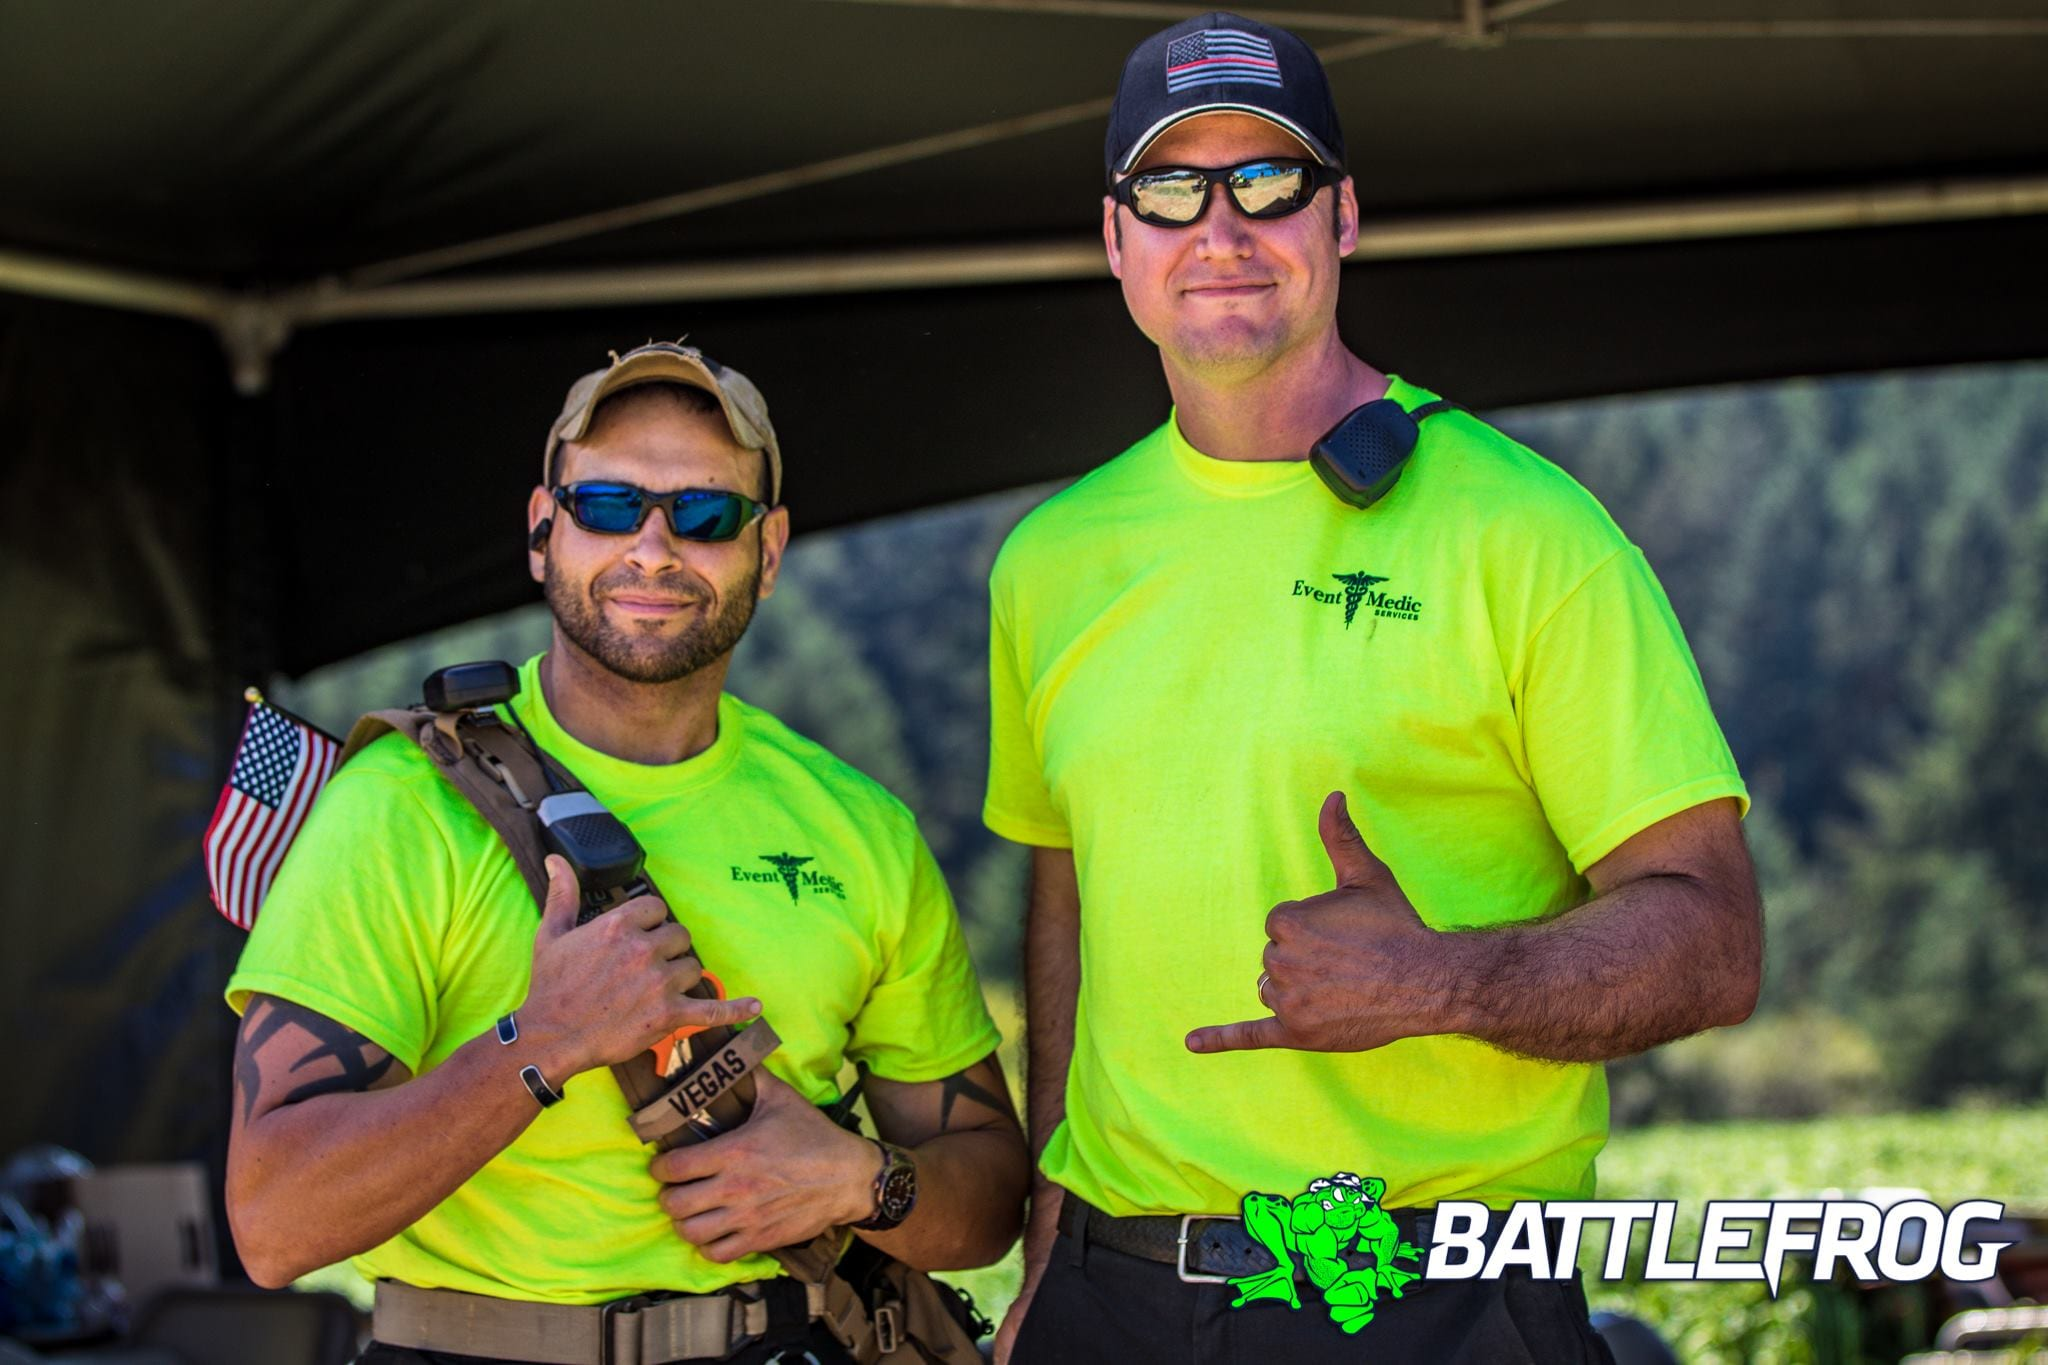 BattleFrog - BFX PDX - On Site Medics